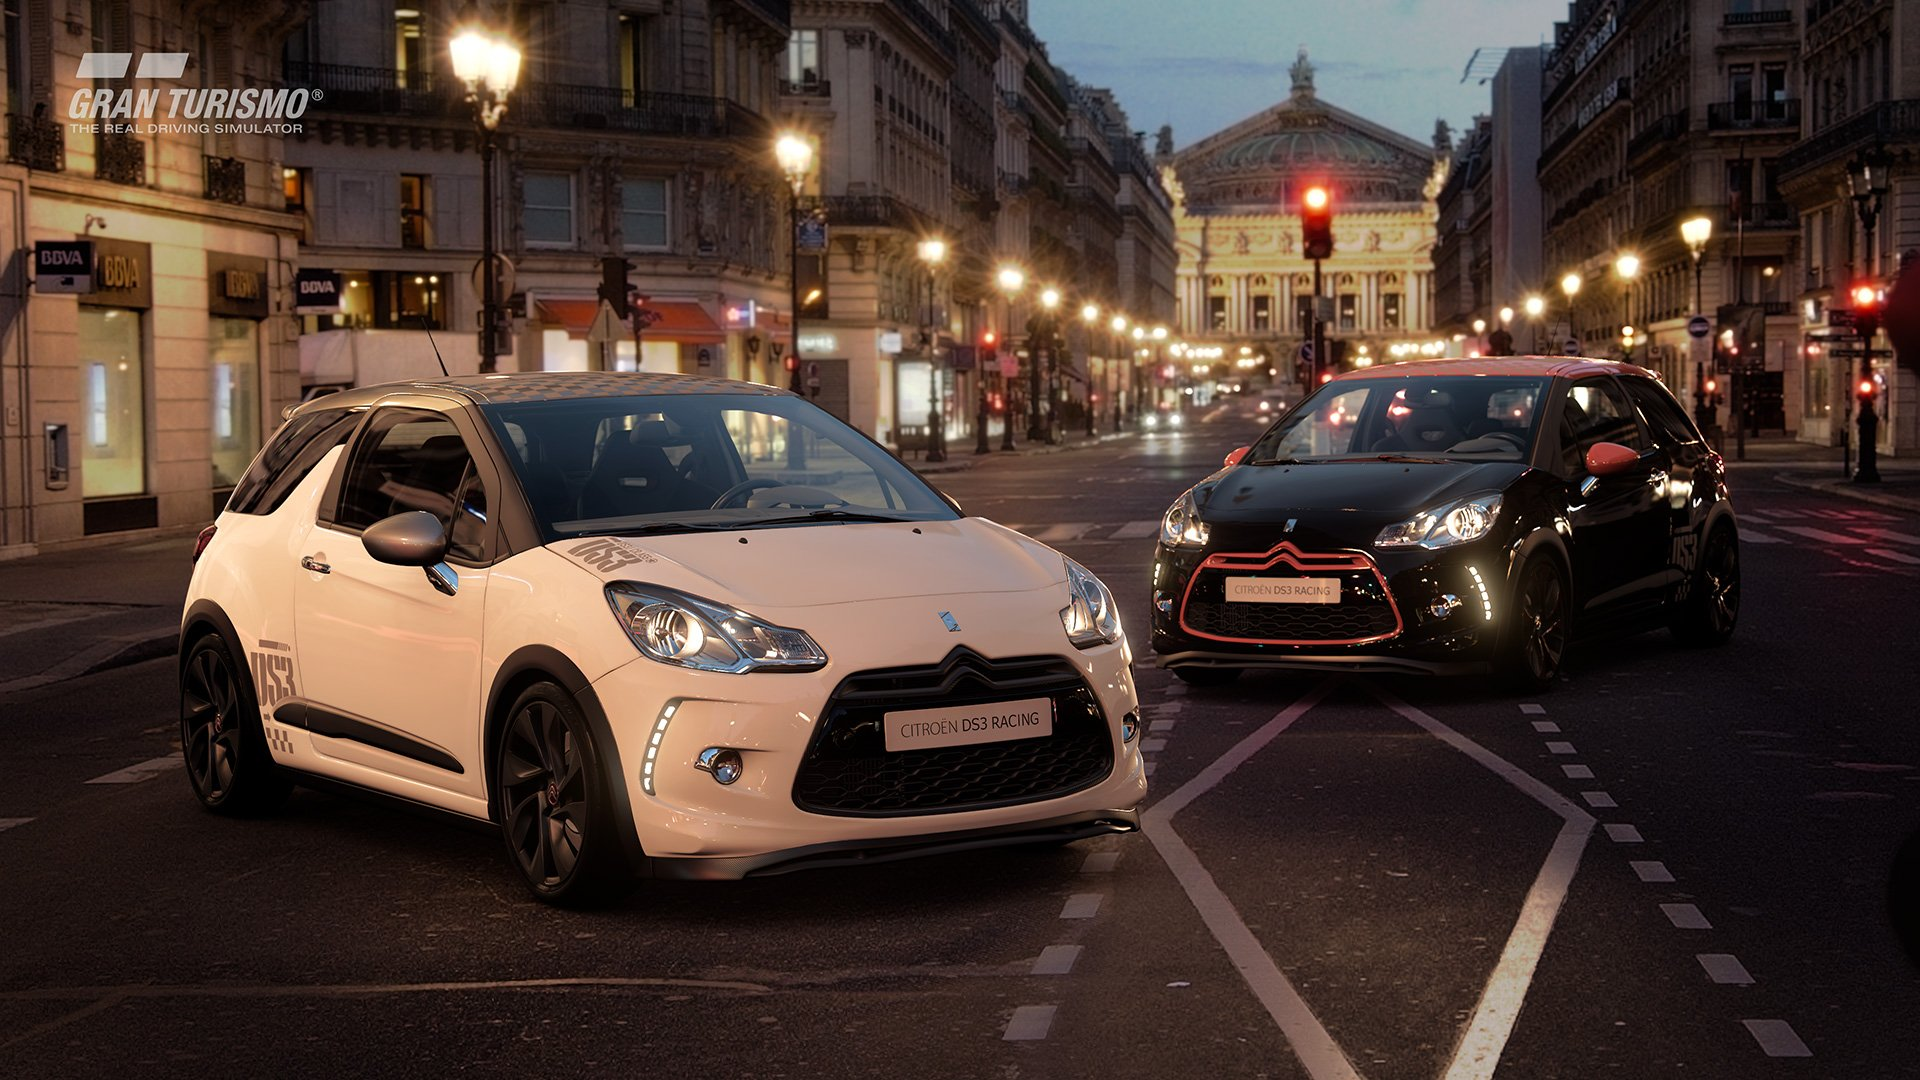 Gran Turismo Sport Citroen DS3 Racing in town